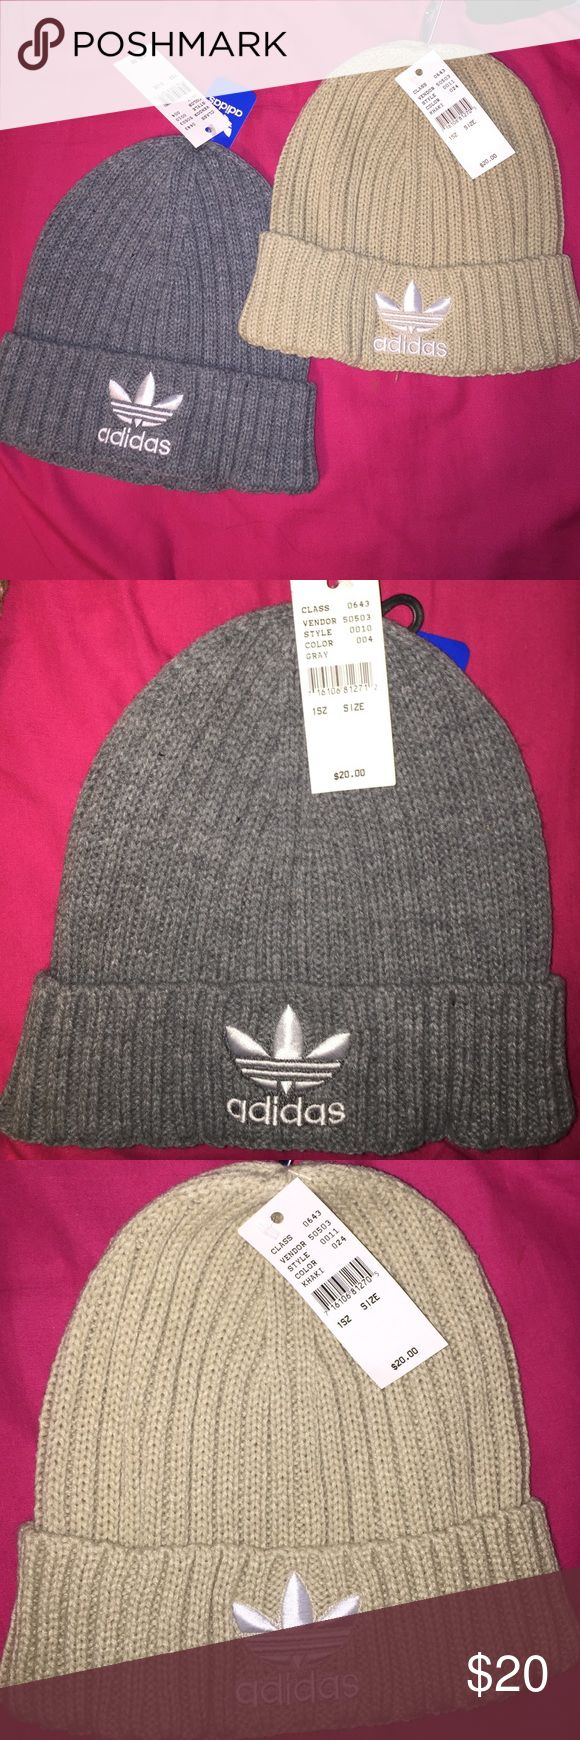 Adidas Beanies BUNDLE Brand new with tags!! Adidas Accessories Hats